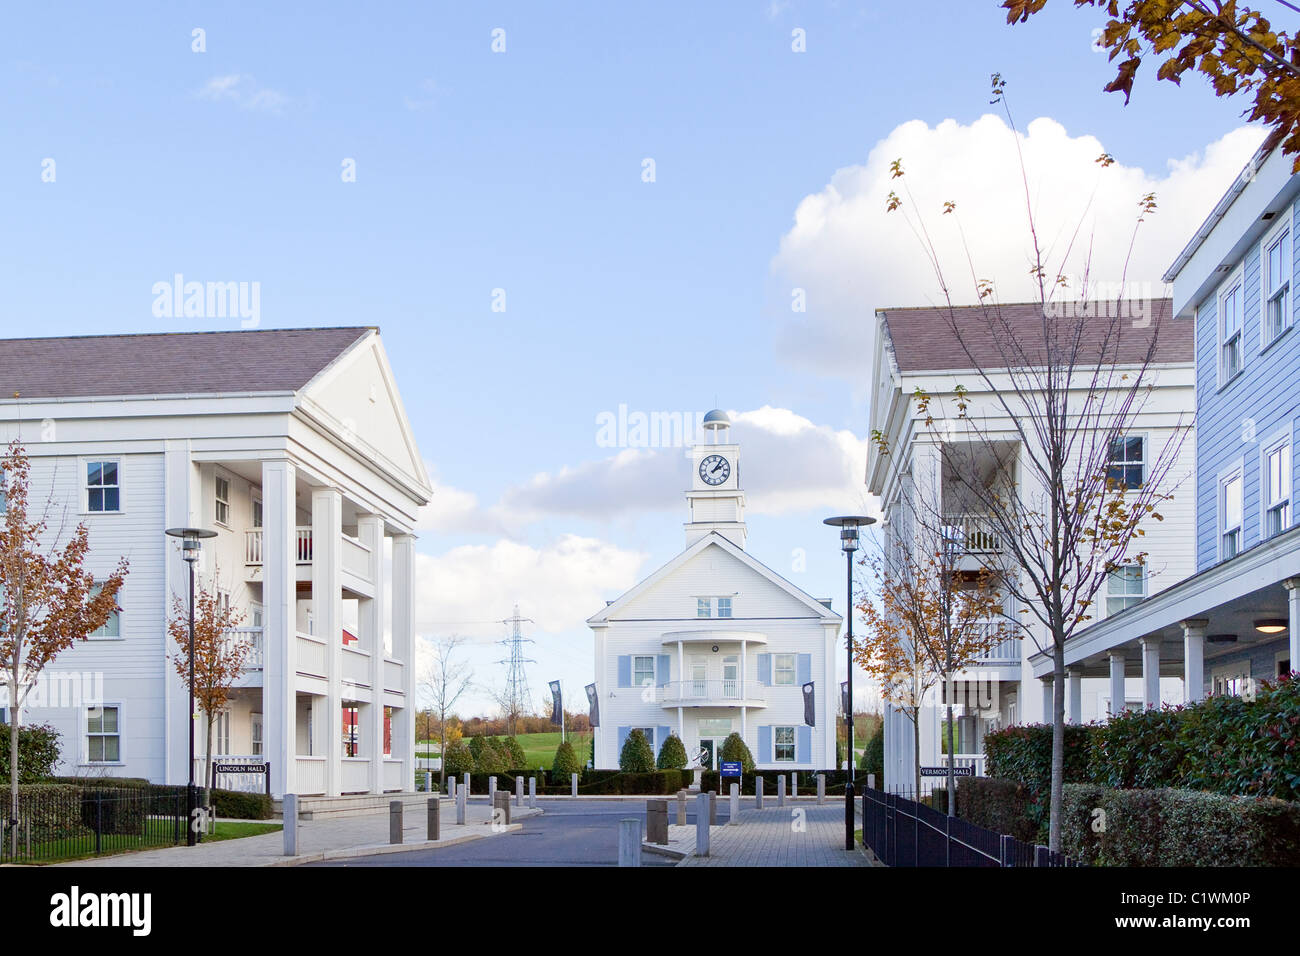 The Hamptons, a development of homes in Worcester Park, South London in New England style - Stock Image